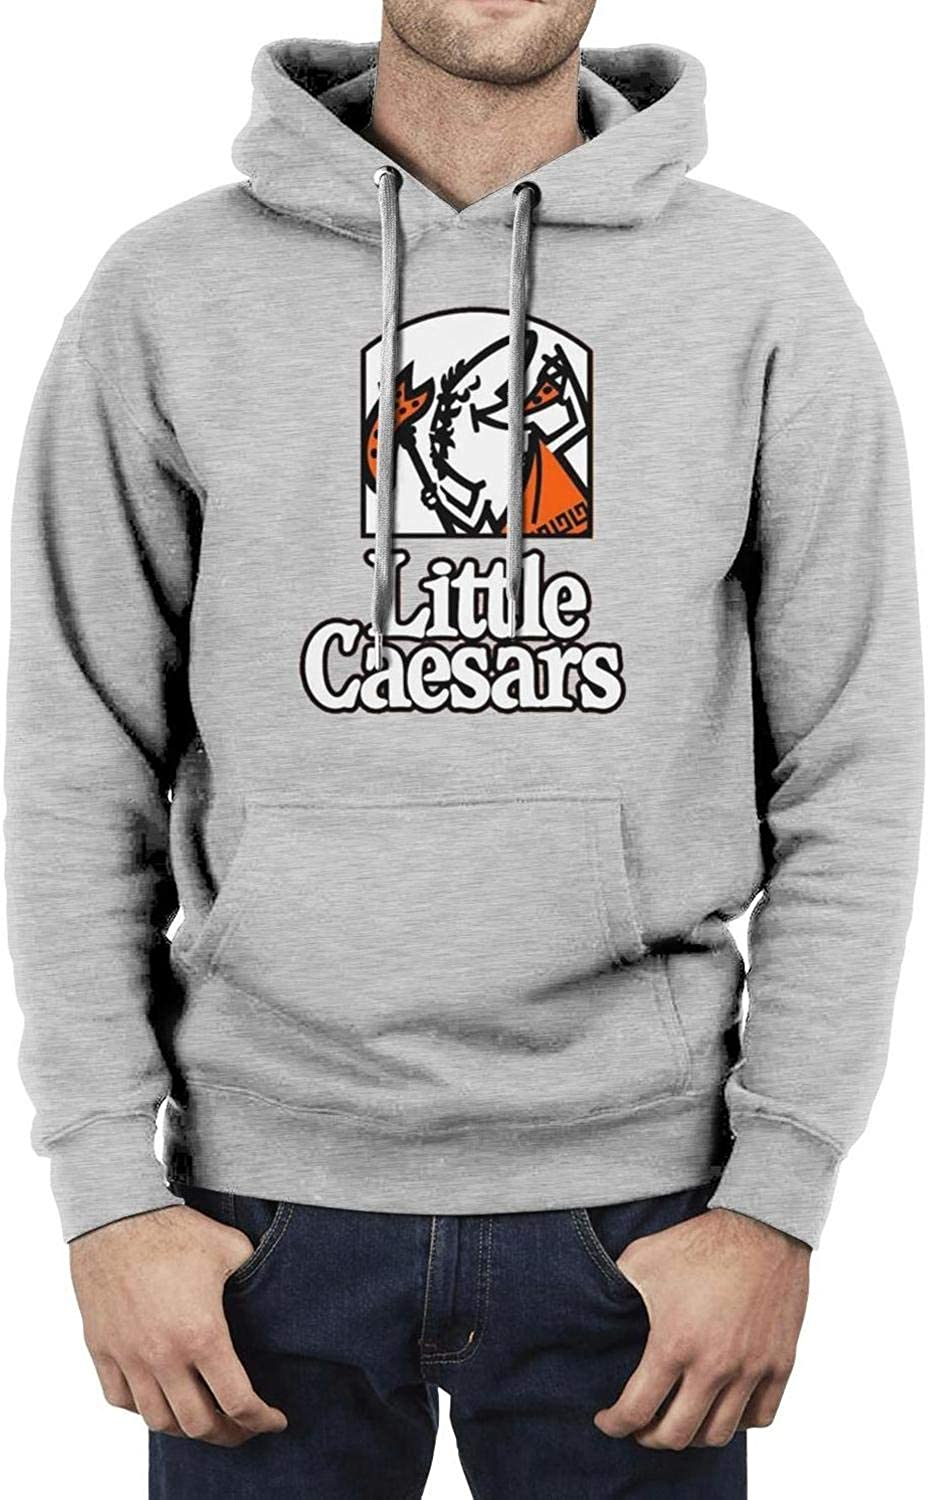 Mens Fashion Hoodies Little-Caesars-Mascot Vintage Long Sleeve Sweatshirt Print Workout Pocket Sports Top